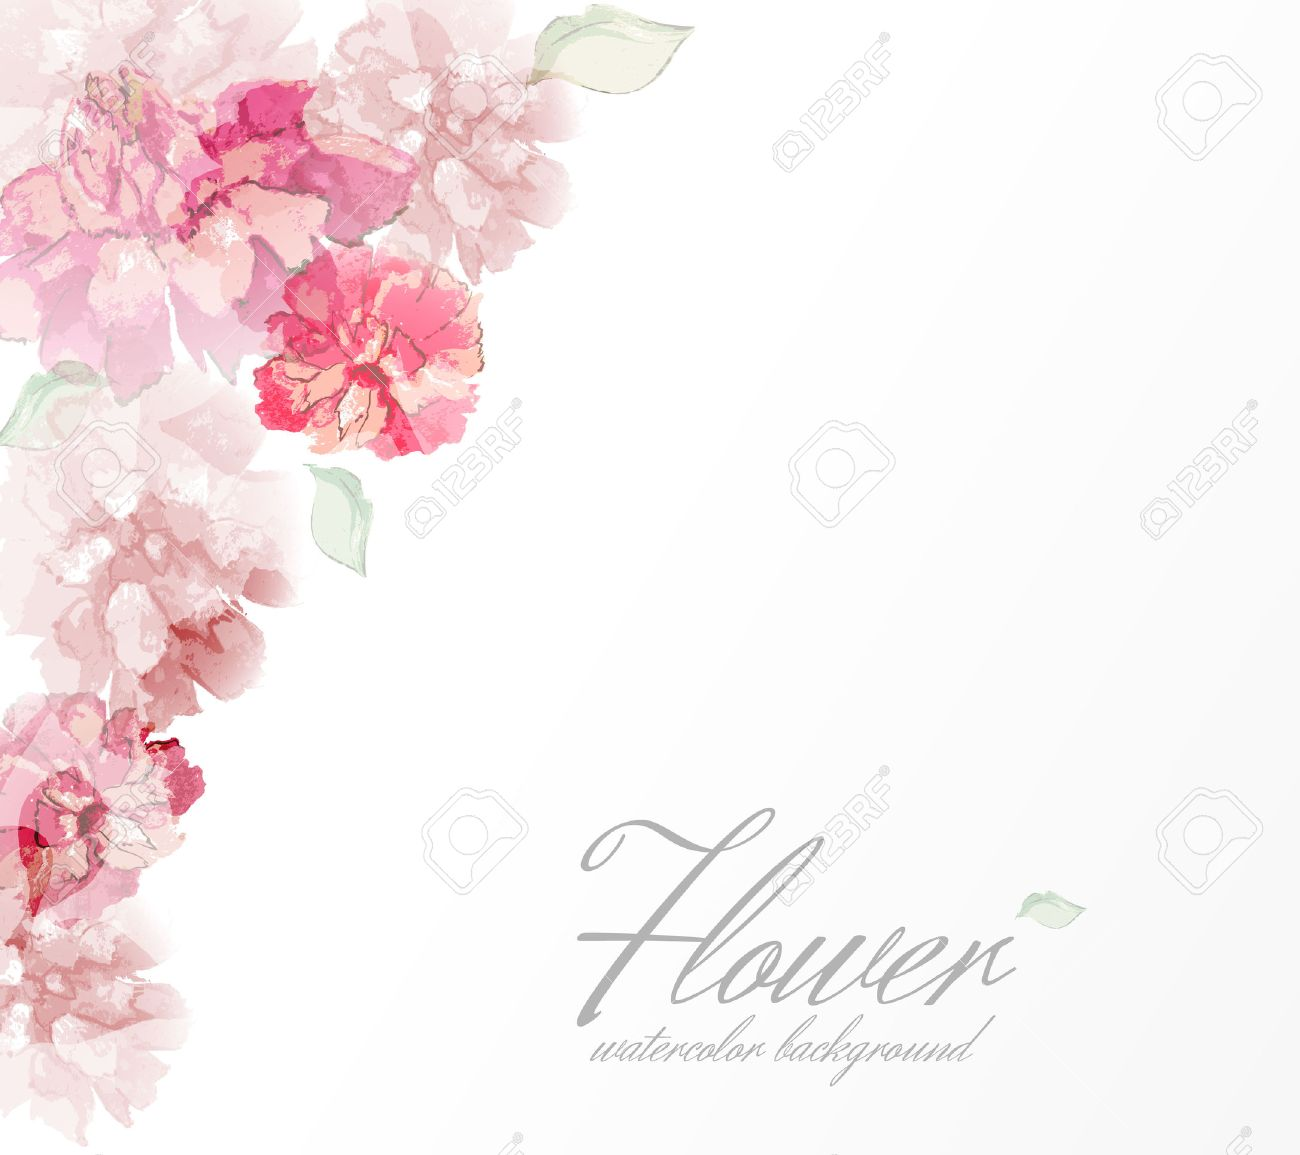 Watercolor Flowers Peonies With Transparent Elements Royalty Free